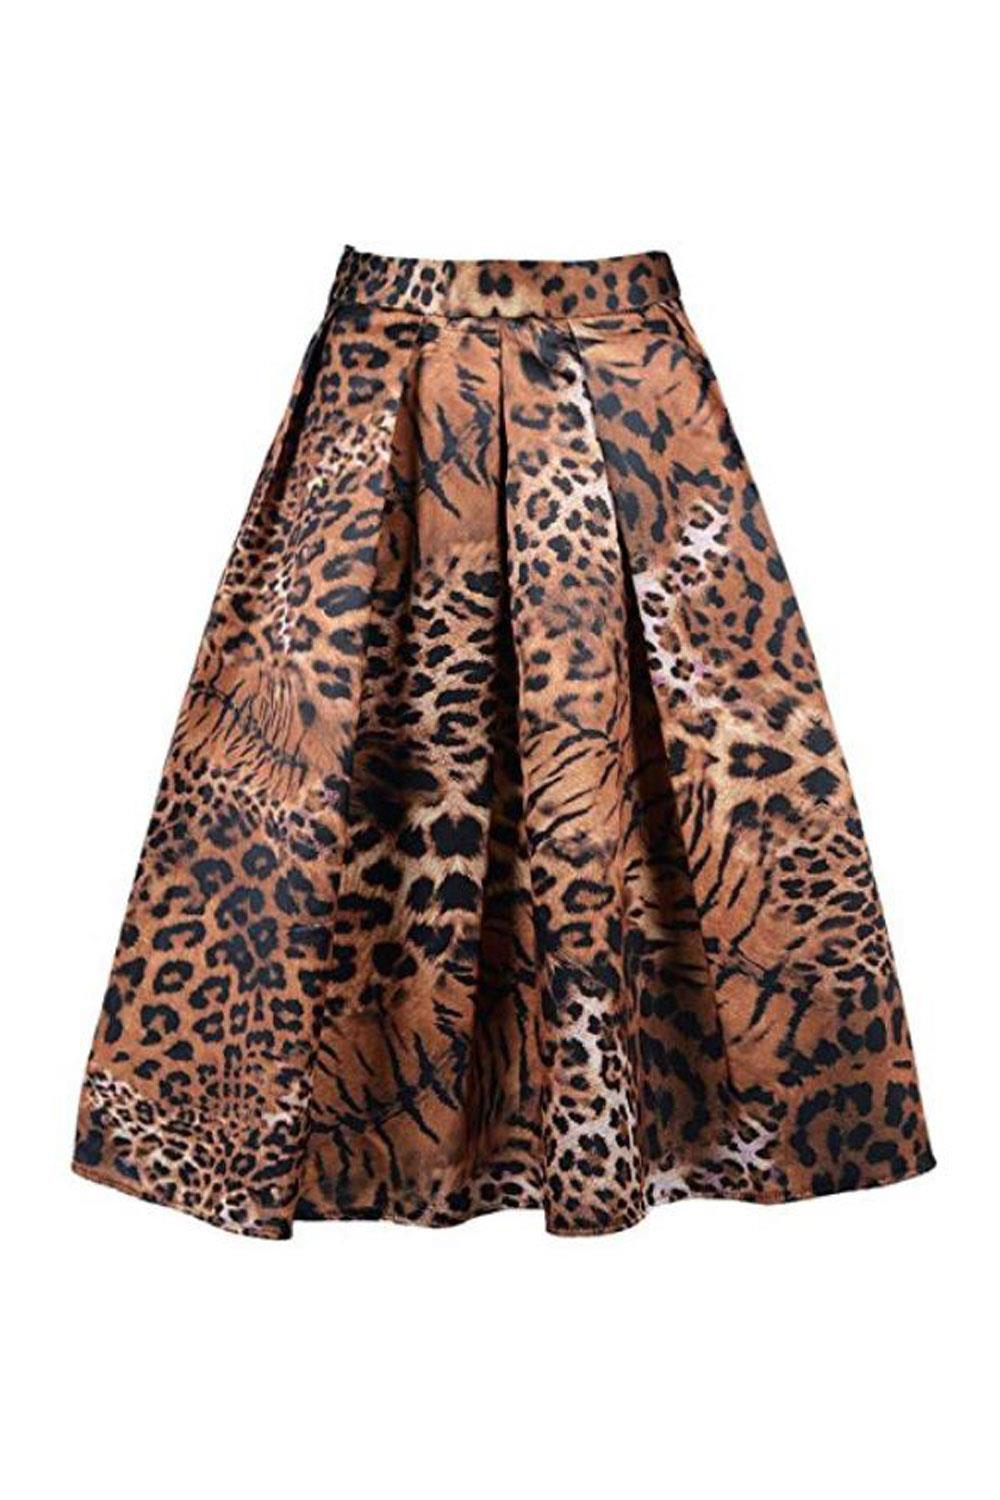 falda leopardo amazon Charles Richards, 20€ aprox.